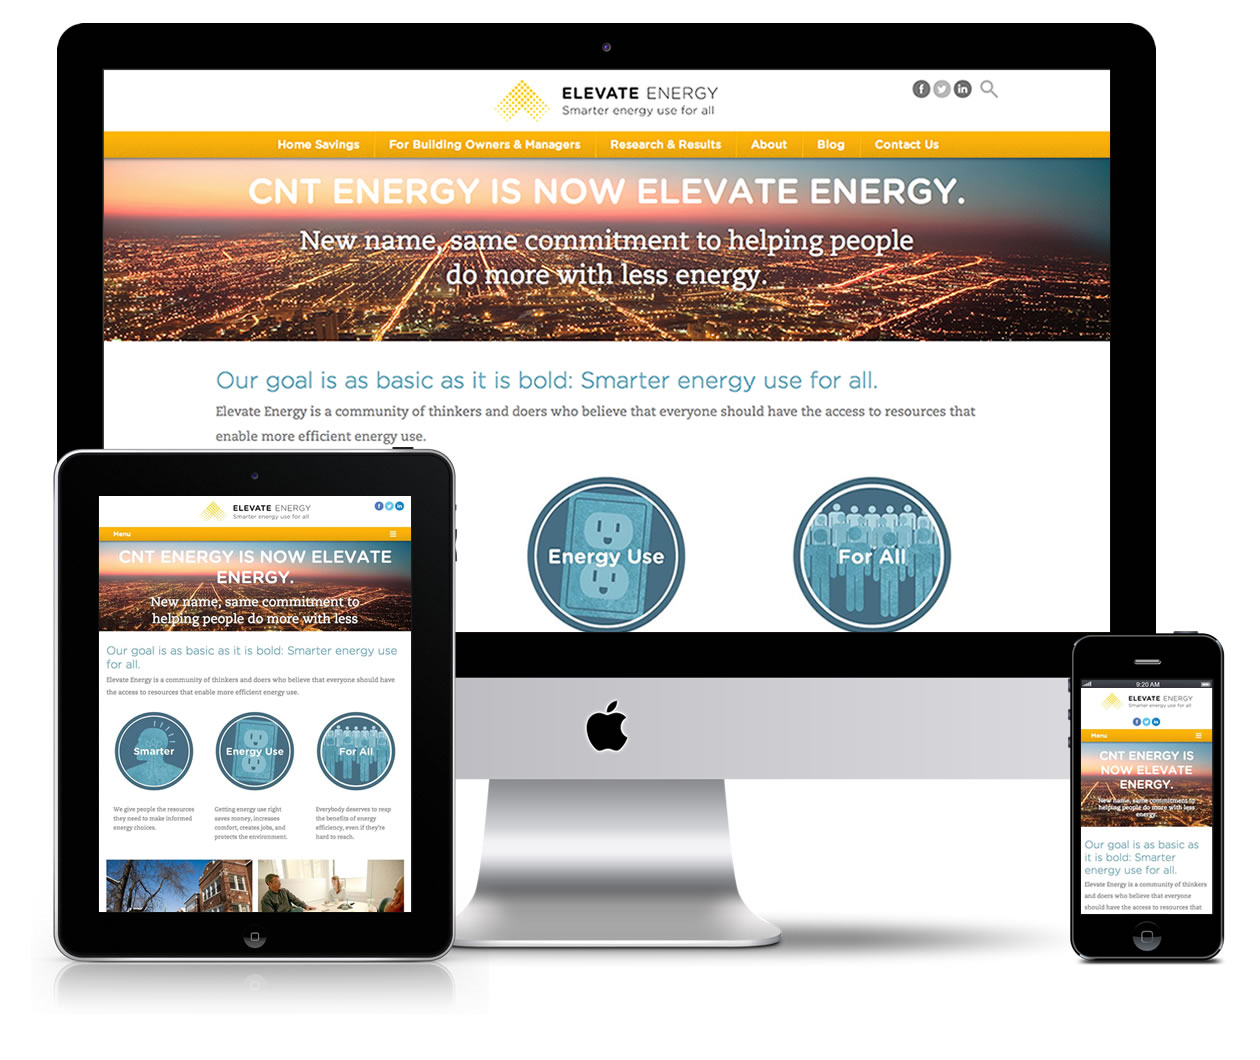 Elevate Energy's website features responsive design, which gives customers a beautiful and intuitive experience, no matter whether they're browsing on a mobile device, tablet or desktop.